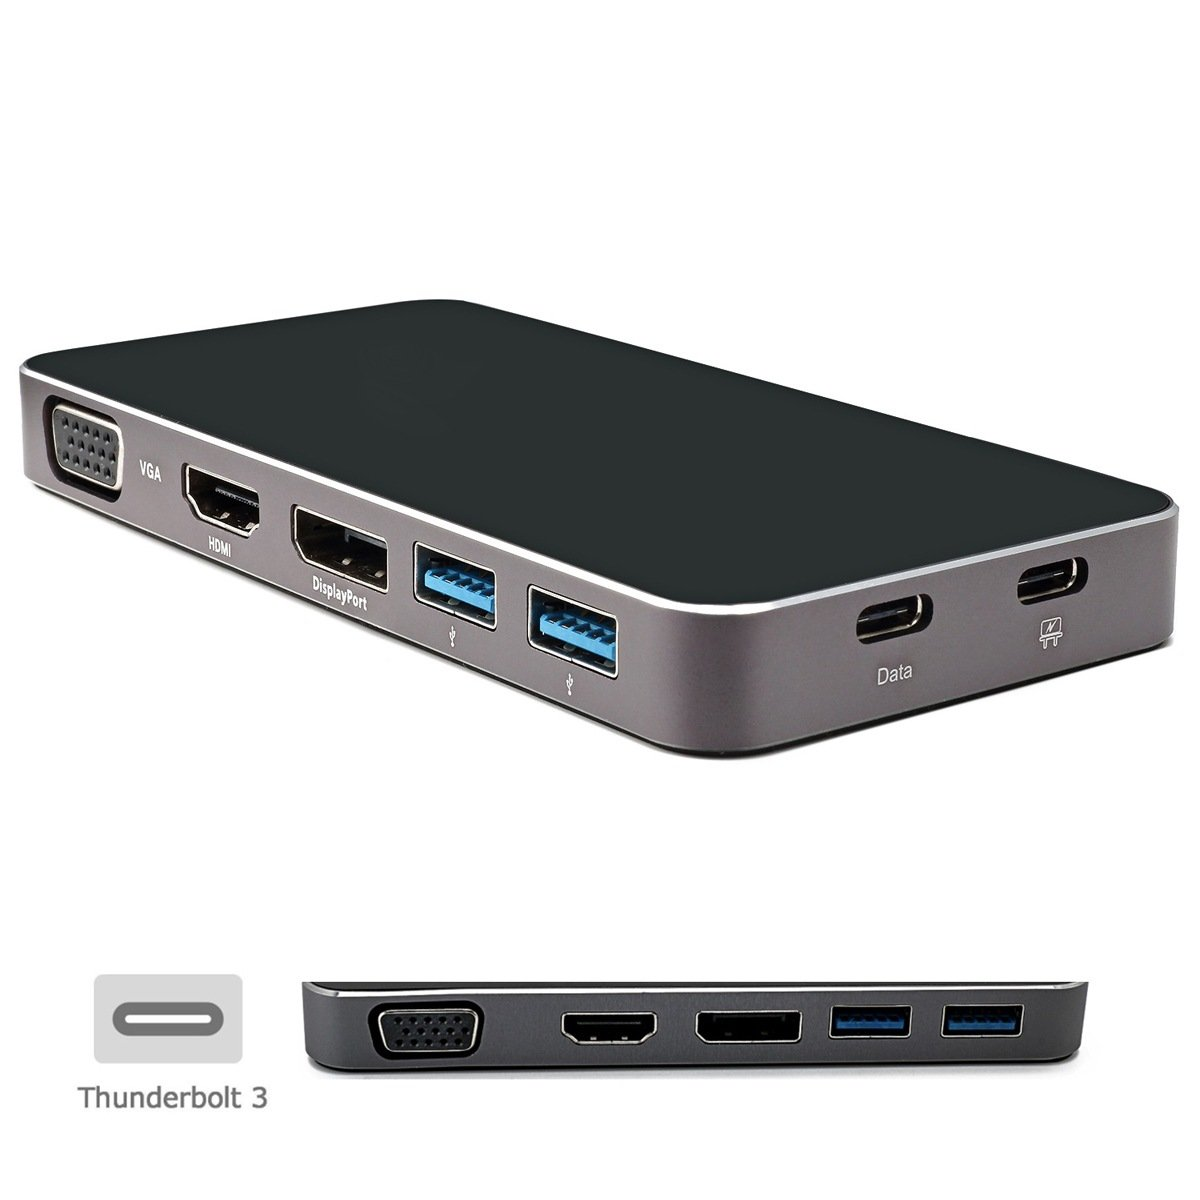 Cablecc Thunderbolt3 USB-C USB 3.1 to Displayport VGA HDMI USB HUB & Dual Type-C Female Power Adapter for Laptop by cablecc